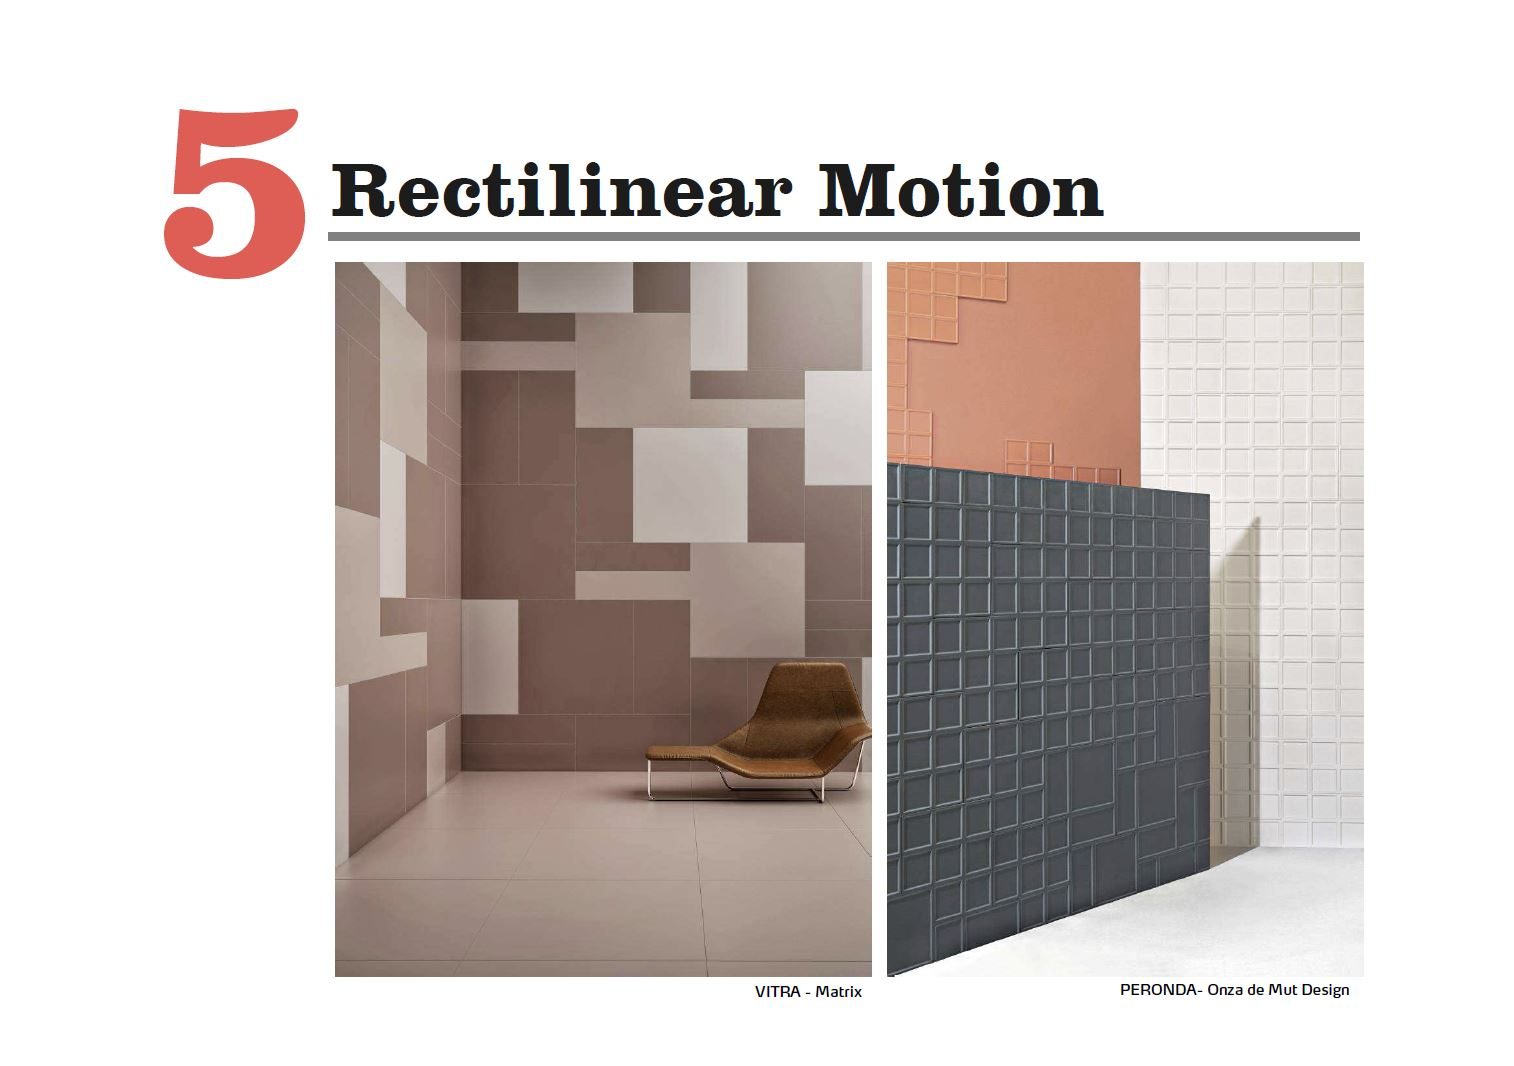 Rectilinear-Motion-tendencias-ceramicas-2016-oth-ceramica-a-mano-alzada